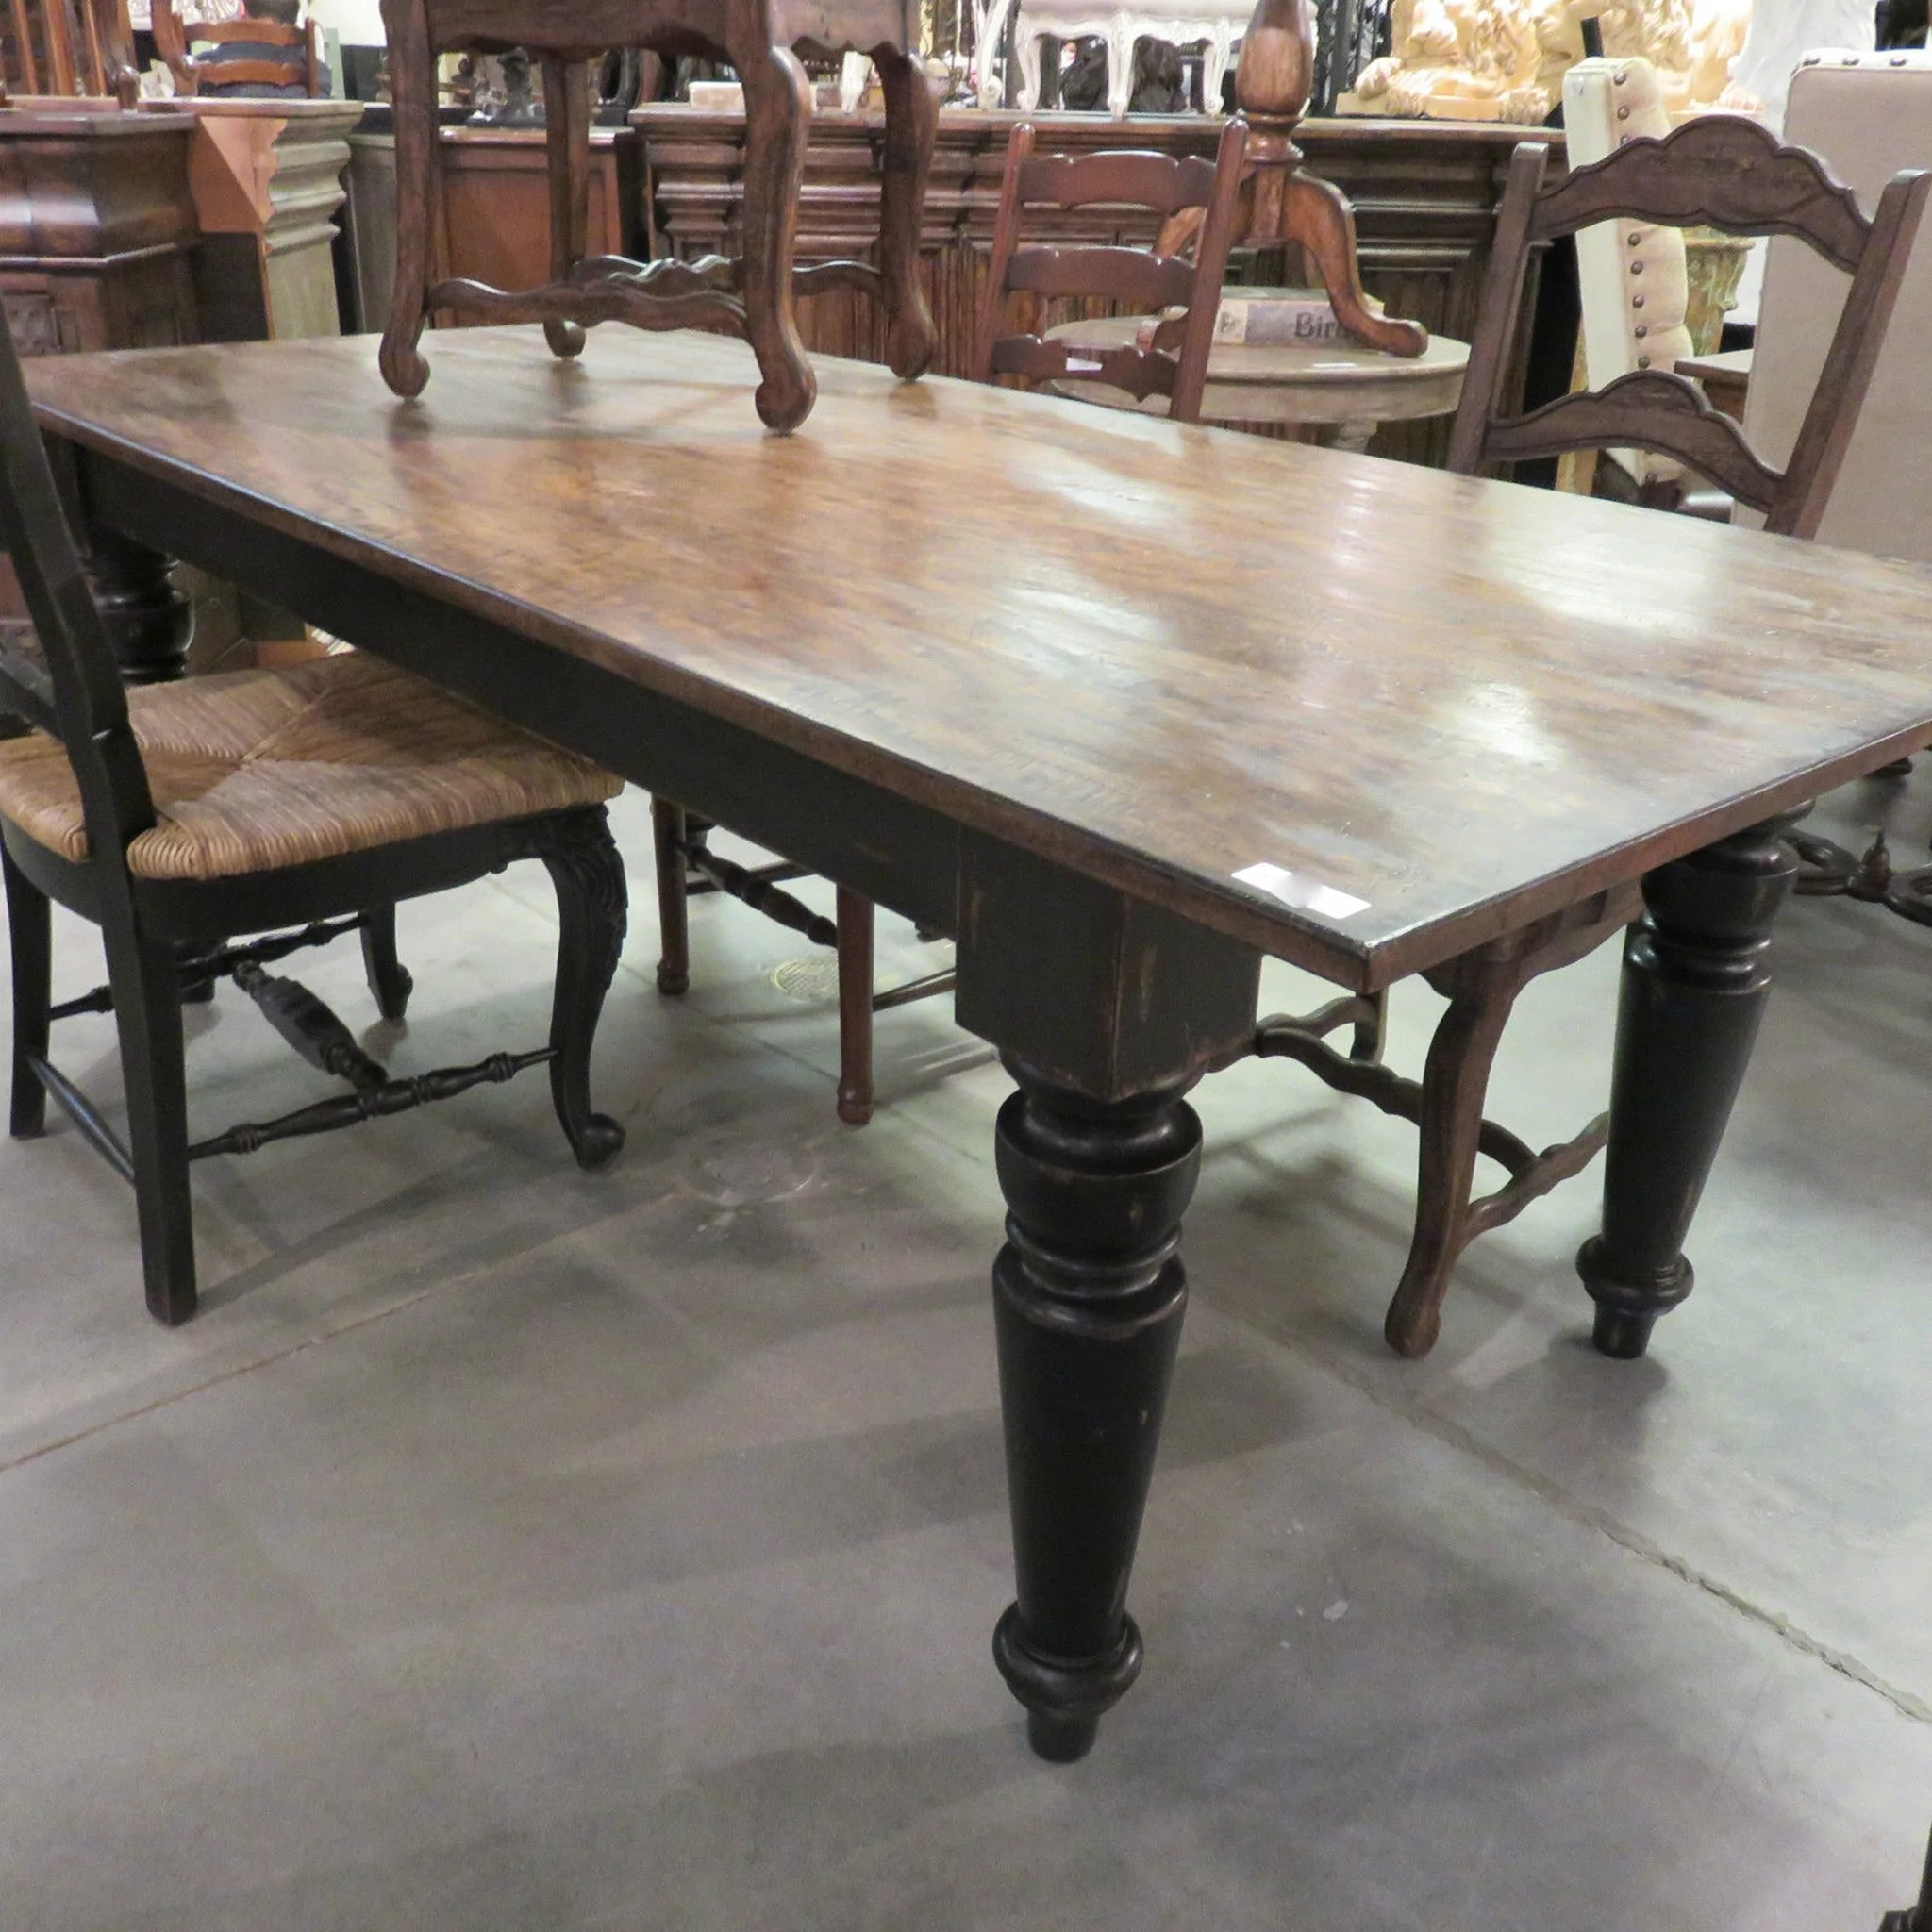 Rustic Farmhouse Dining Table 84 Black Distressed Reclaimed Wood Top Furniture On Main